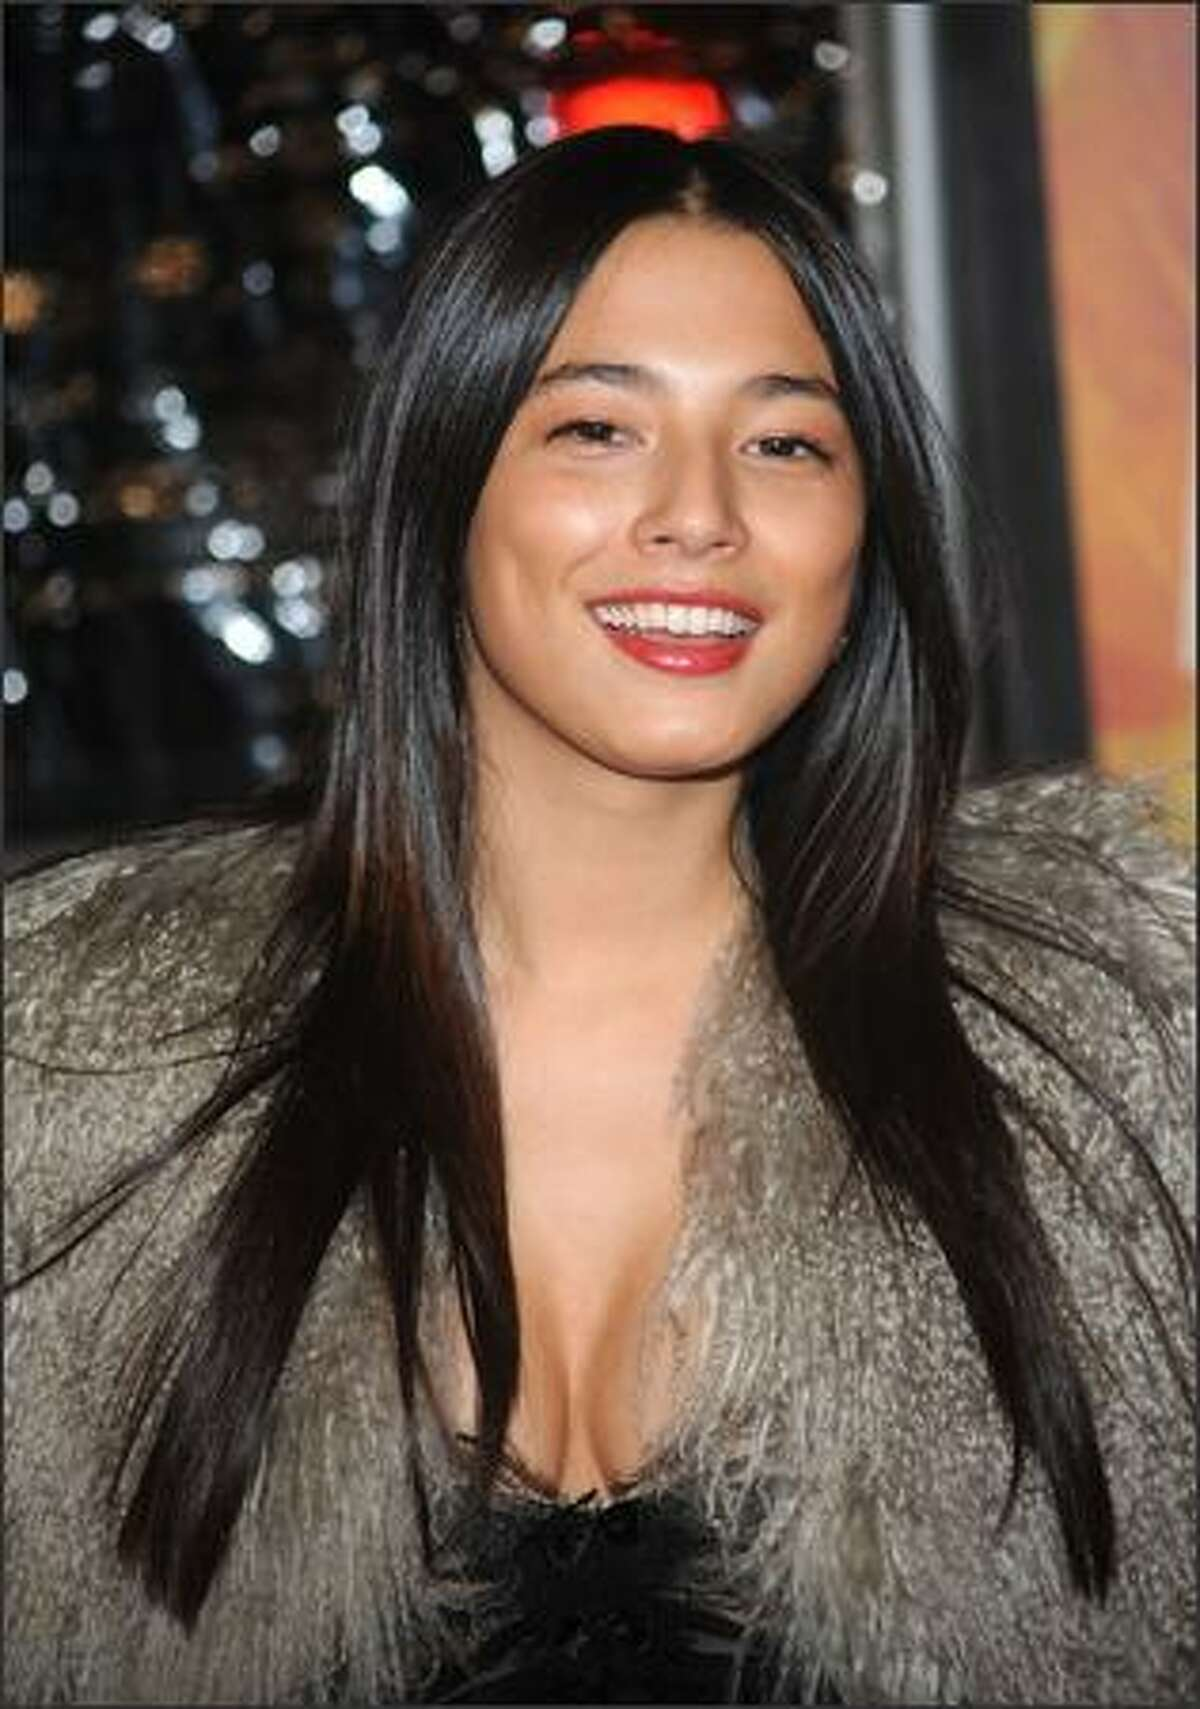 Jessica Gomez attends the New York premiere of